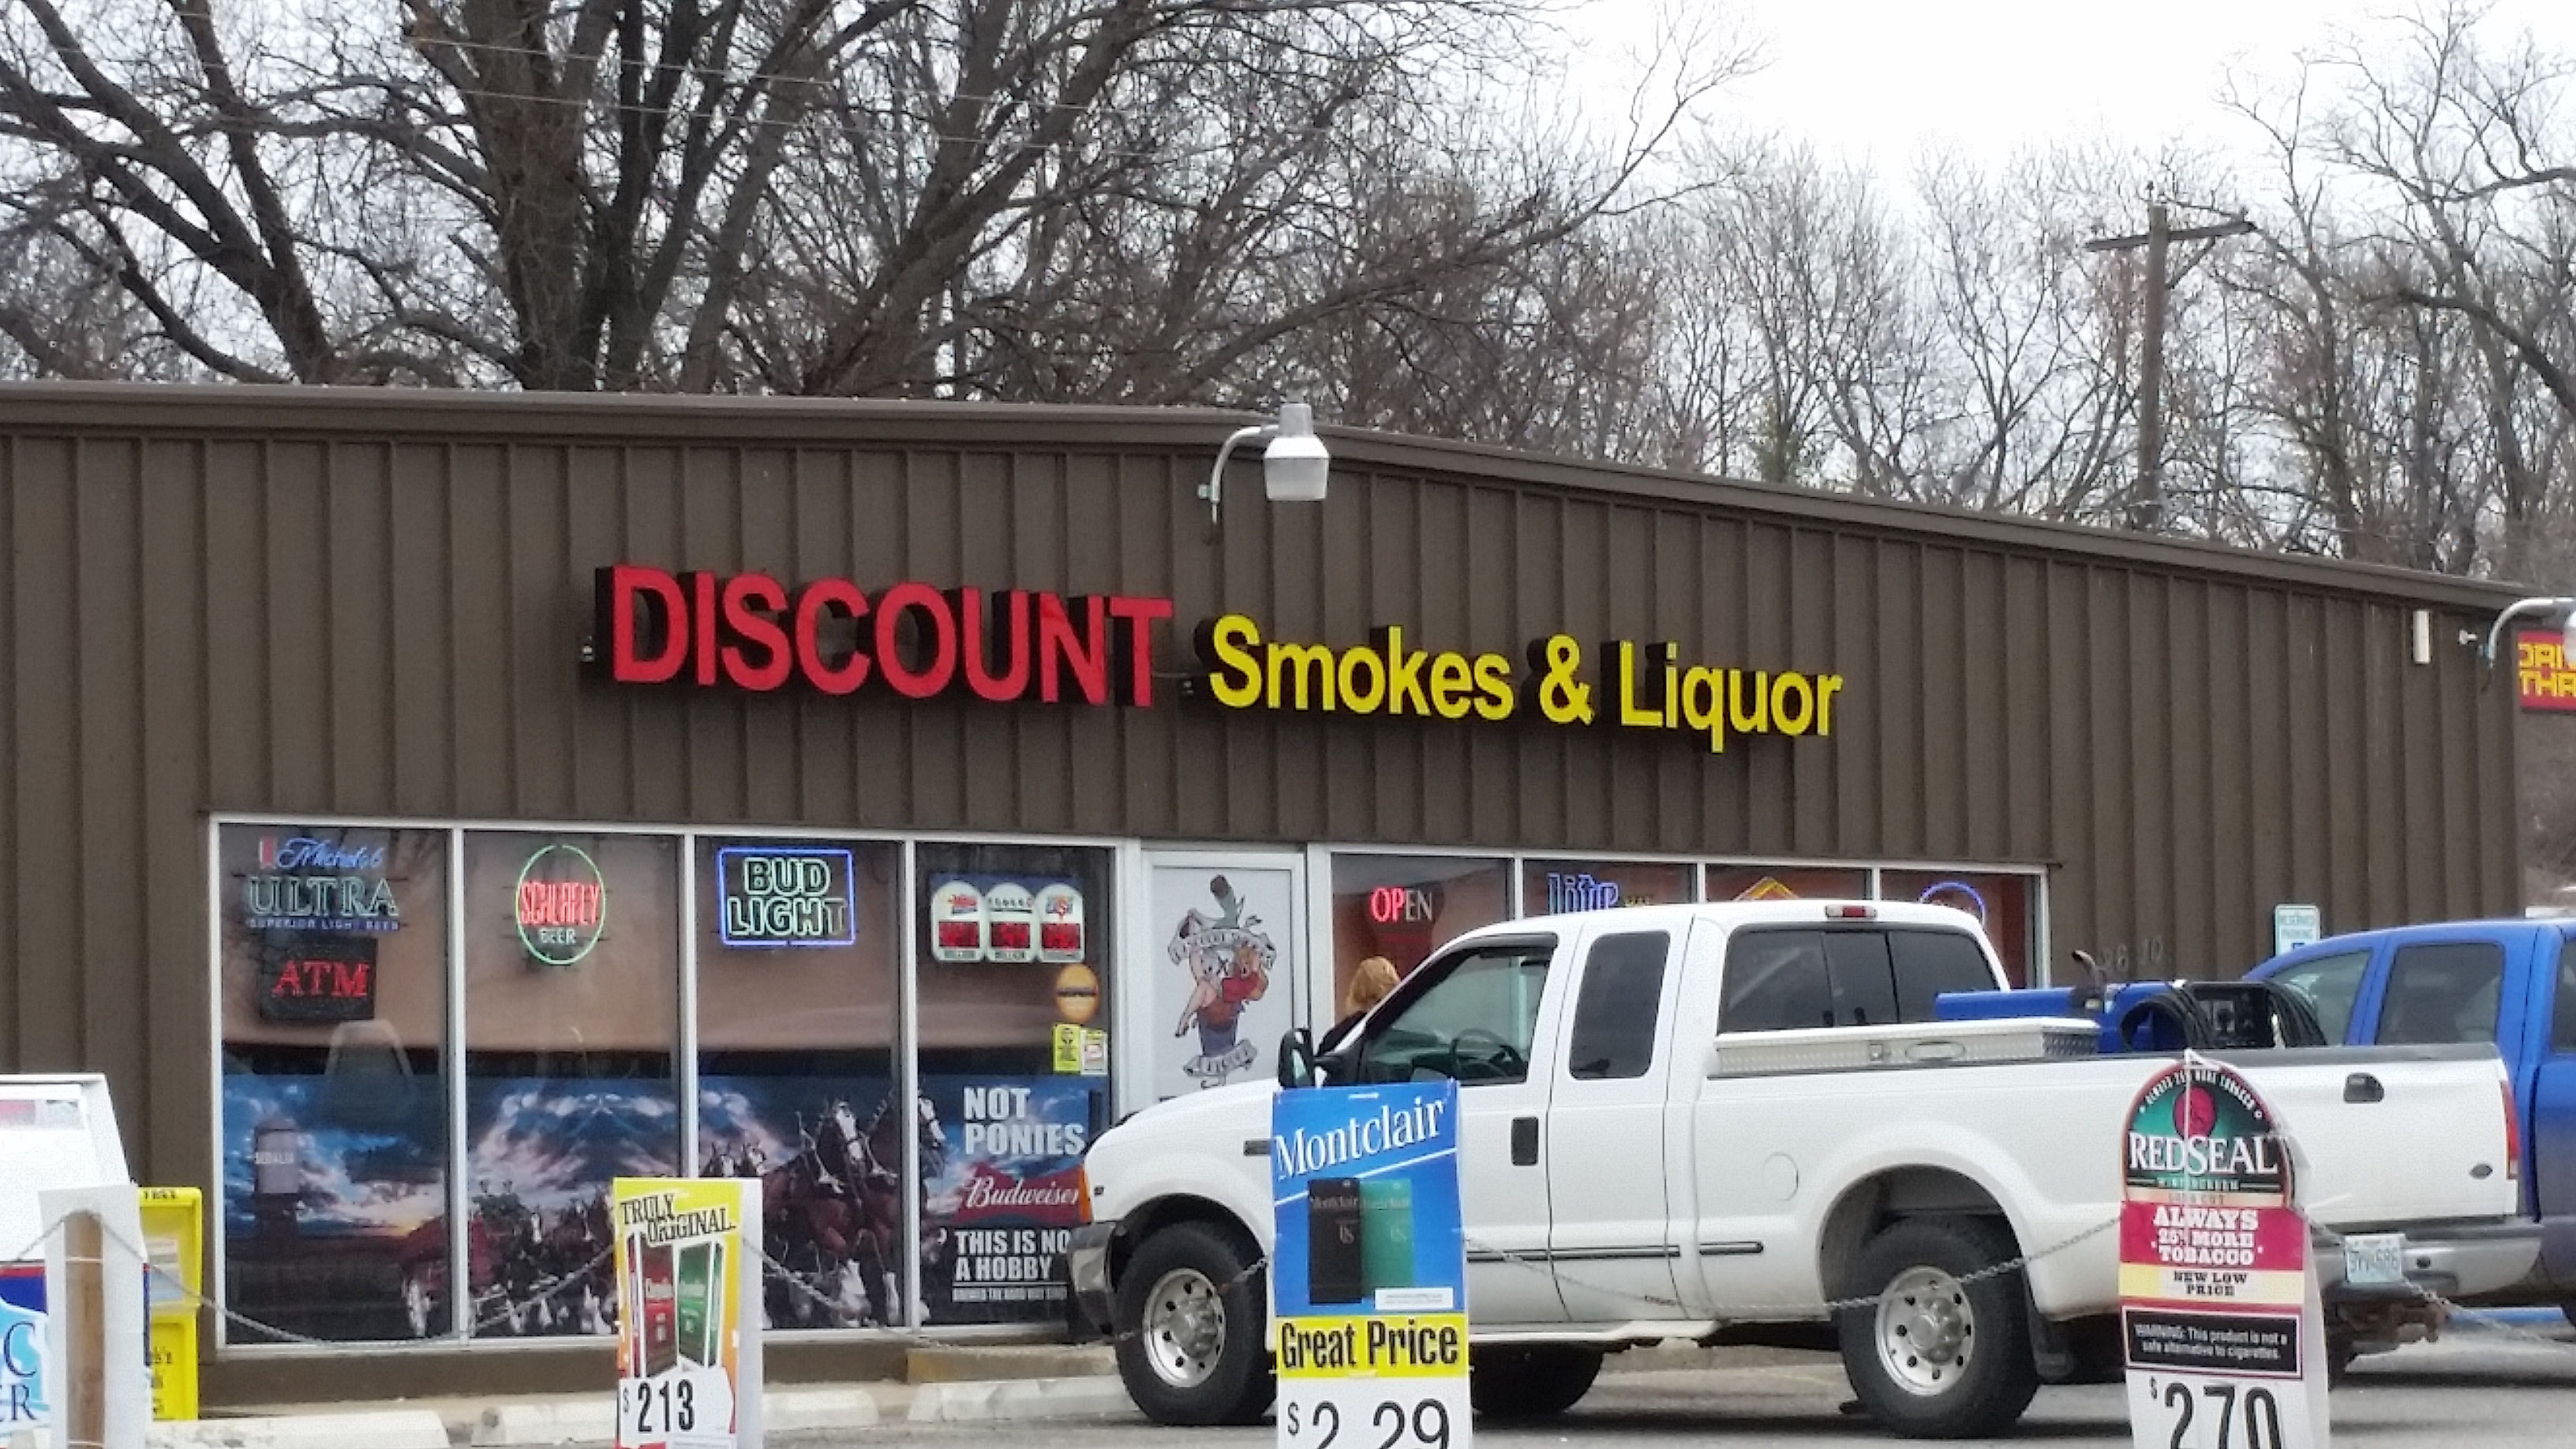 Discount Smokes & Liquor